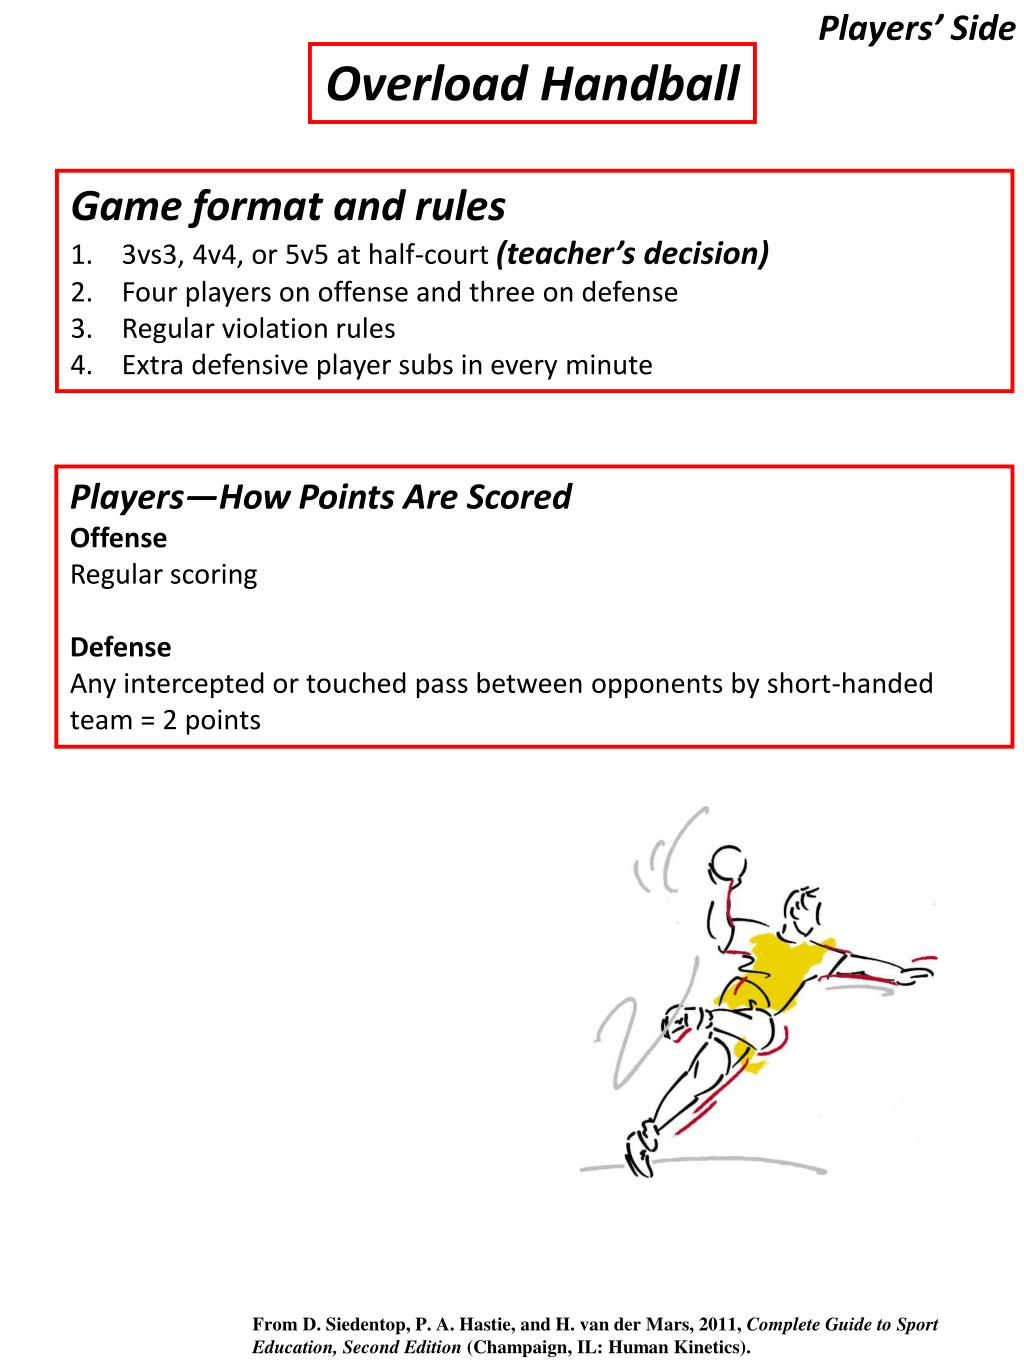 PPT - Shaping Game Play in Handball PowerPoint Presentation